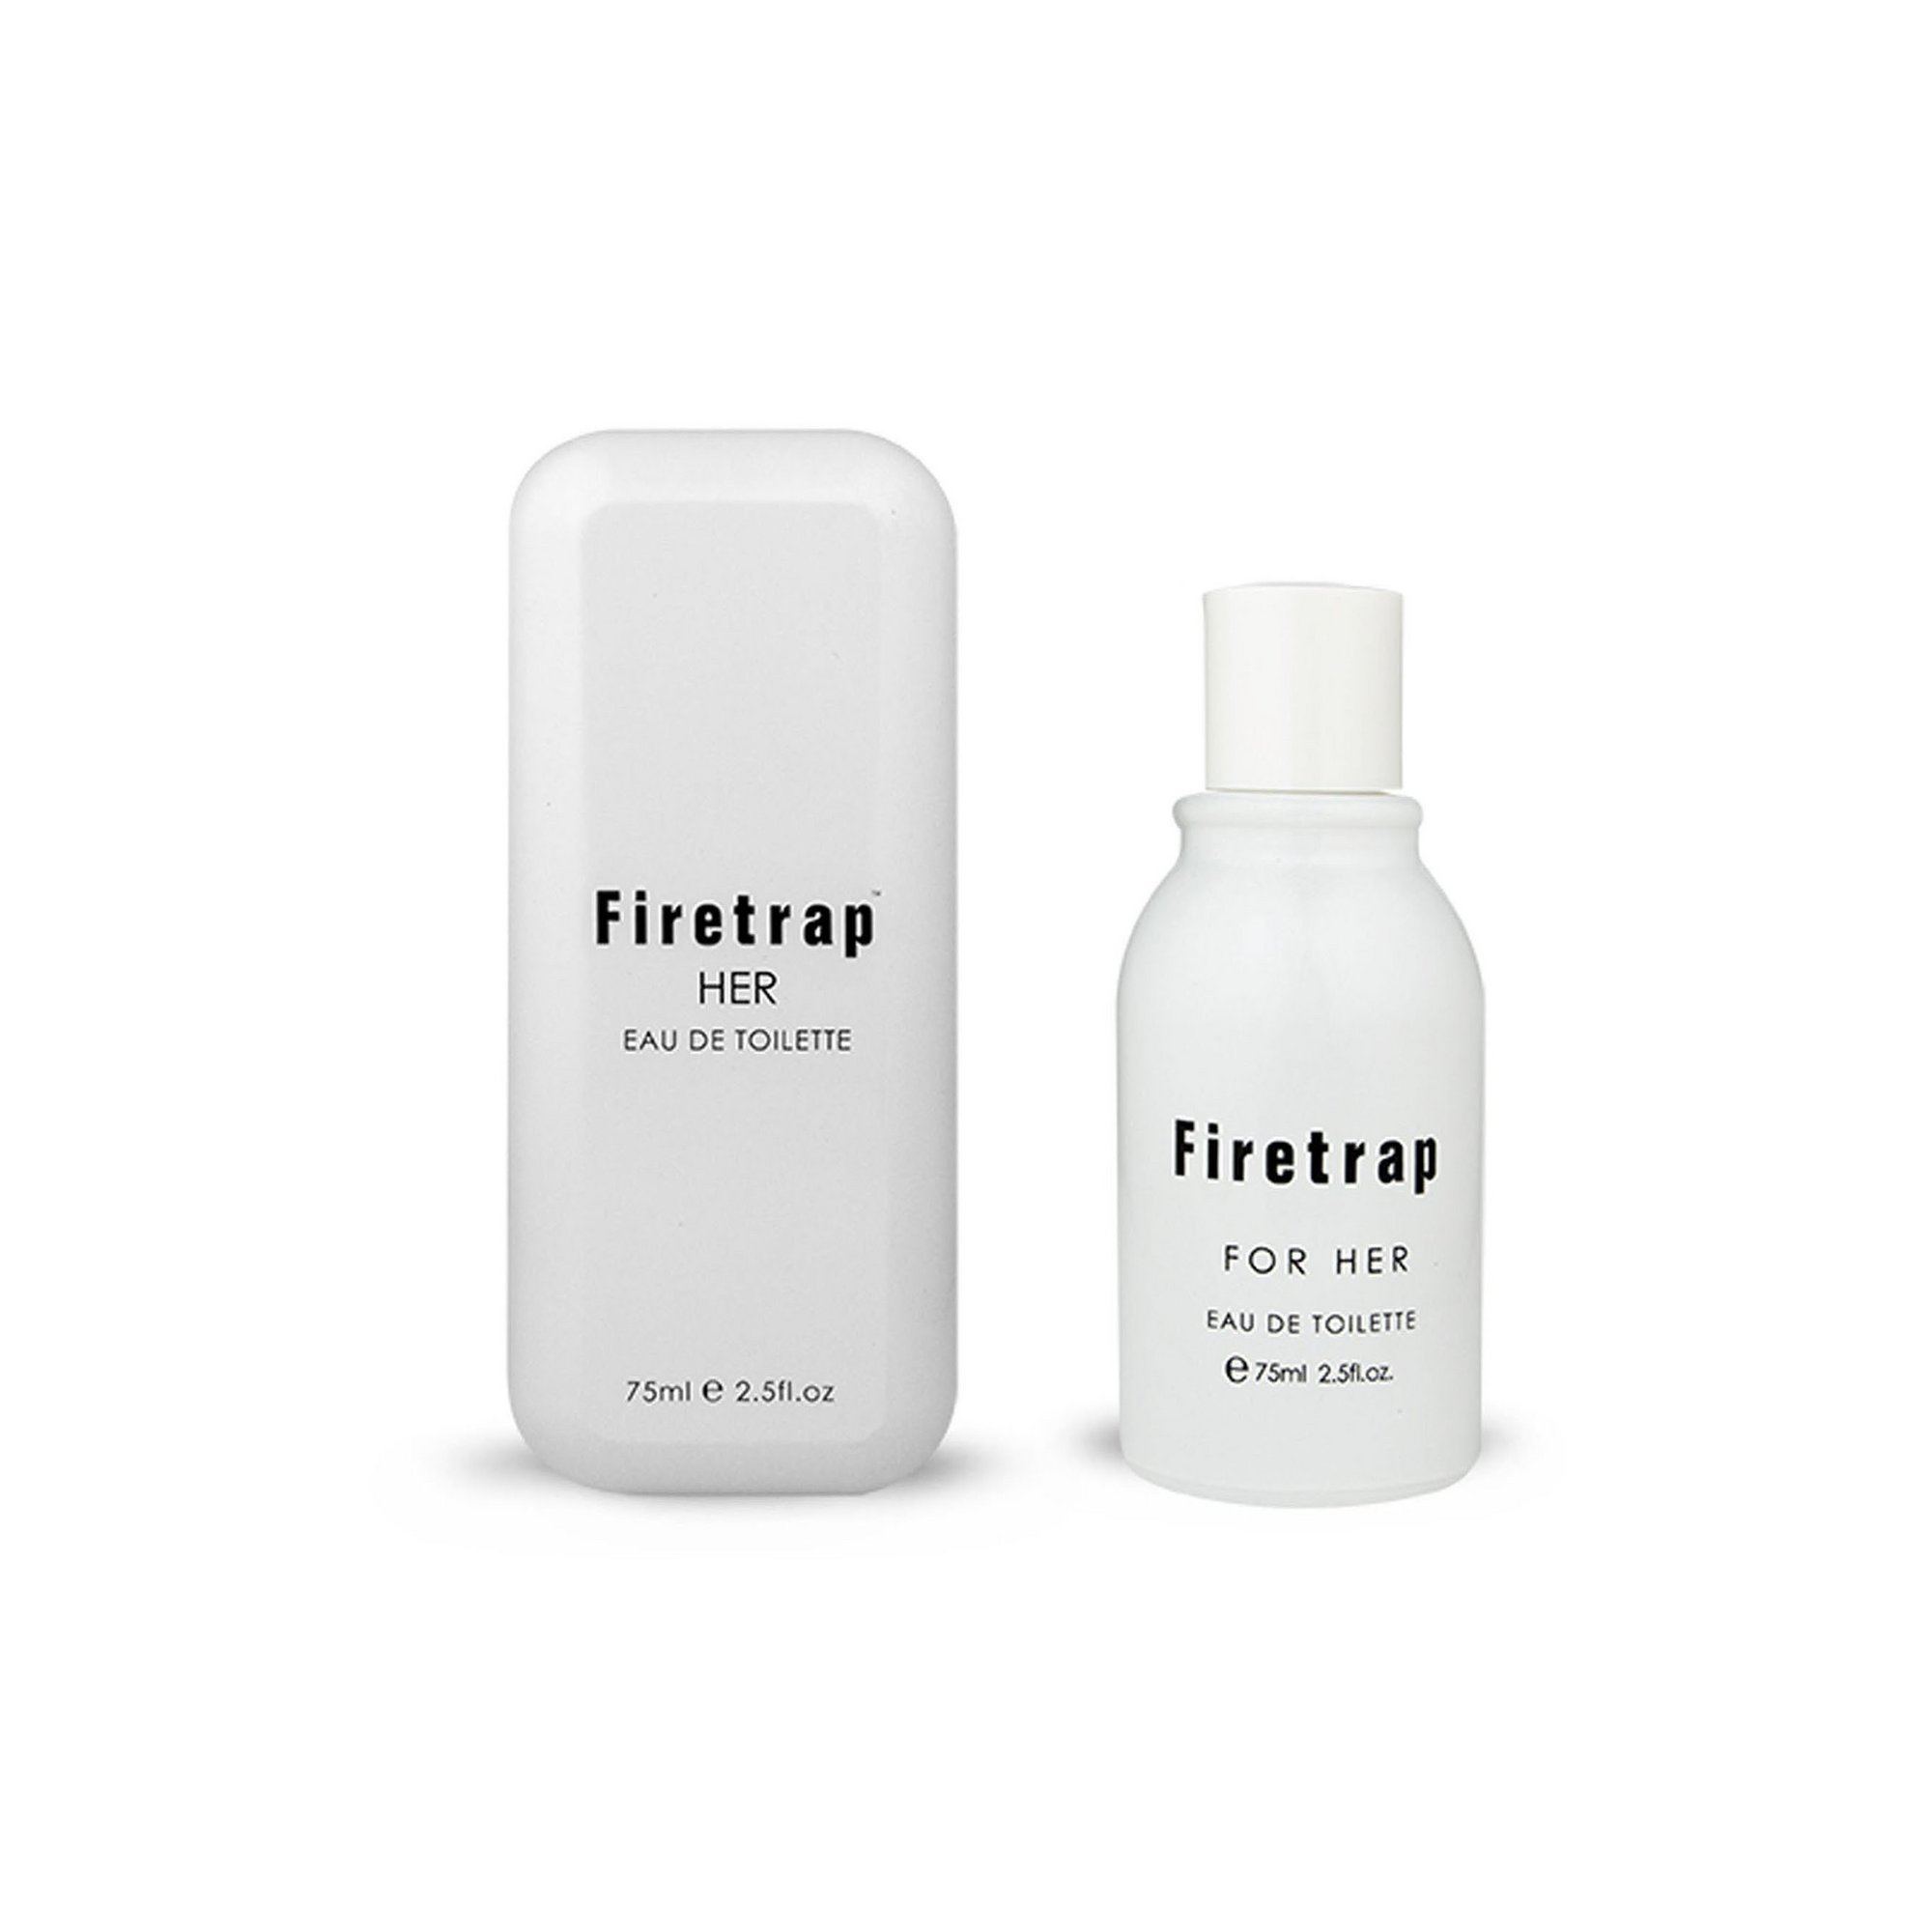 Image of Firetrap 75ml EDT Tin for Her